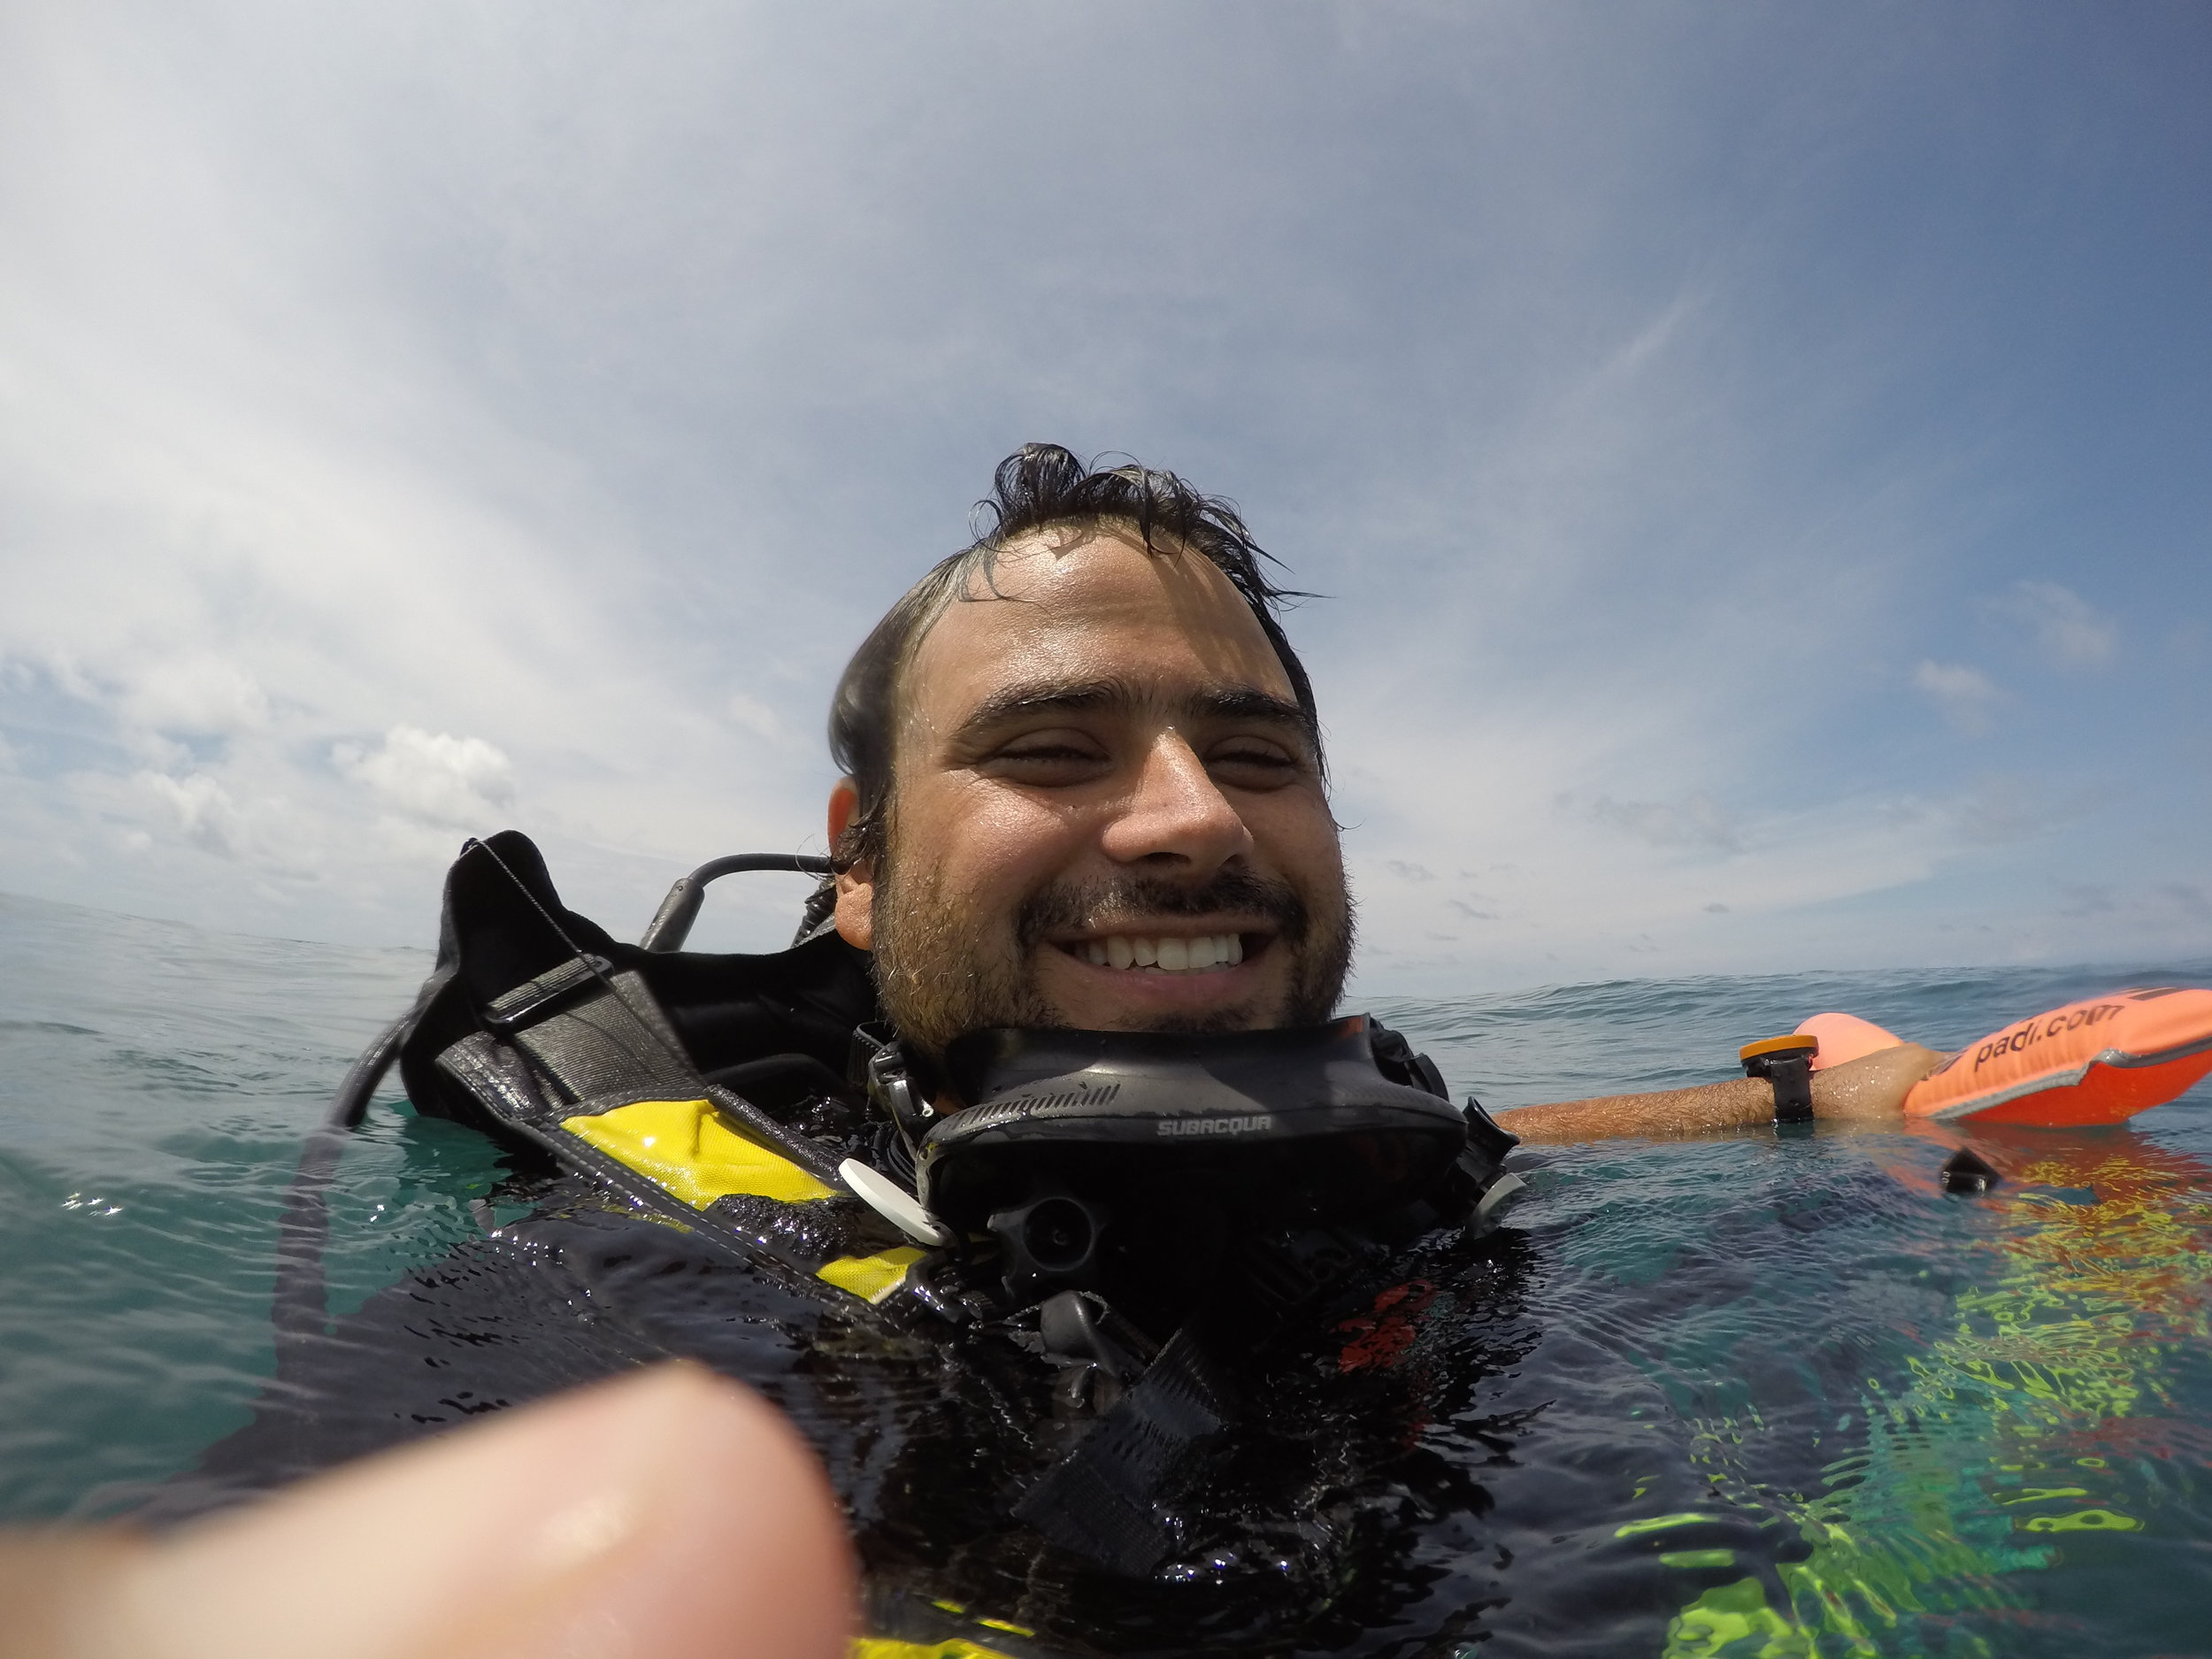 Juan Pinto - Juan is our conservation leader and pretty much does everything at Iguana Divers. He has an innate interest in biodiversity and ecology, and naturally gravitates towards opportunities to get involved with initiatives to help understand and protect the rich ecosystems we have the privilege to be surrounded by. Whenever we have a question about wildlife we go to him! PADI Pro #408515